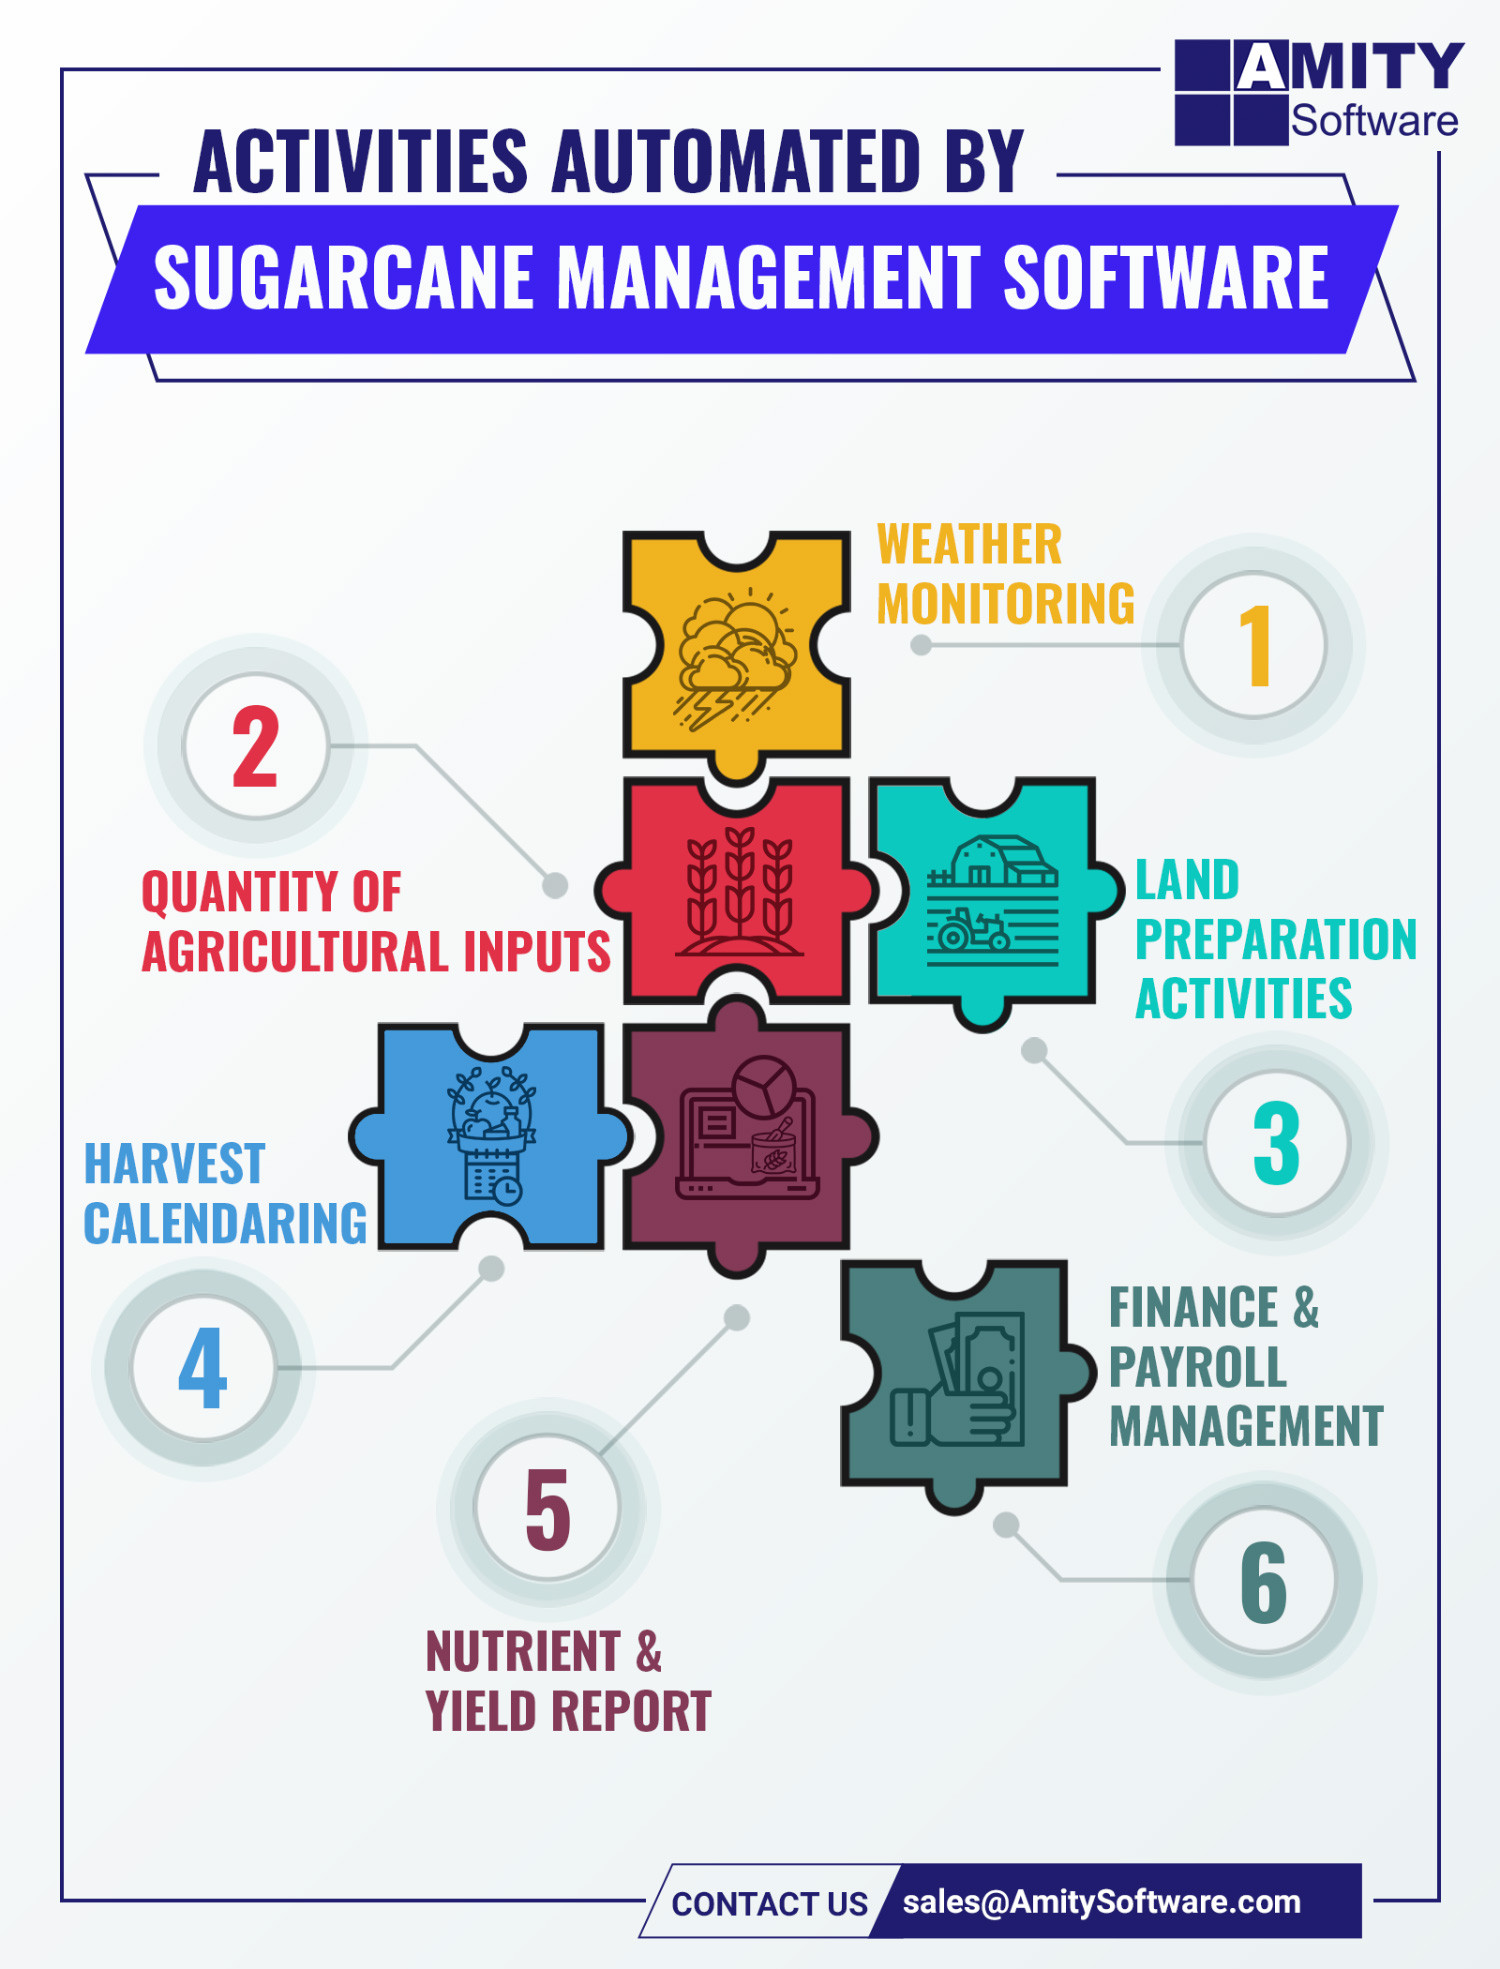 Activities Automated by Sugarcane Management Software Infographic